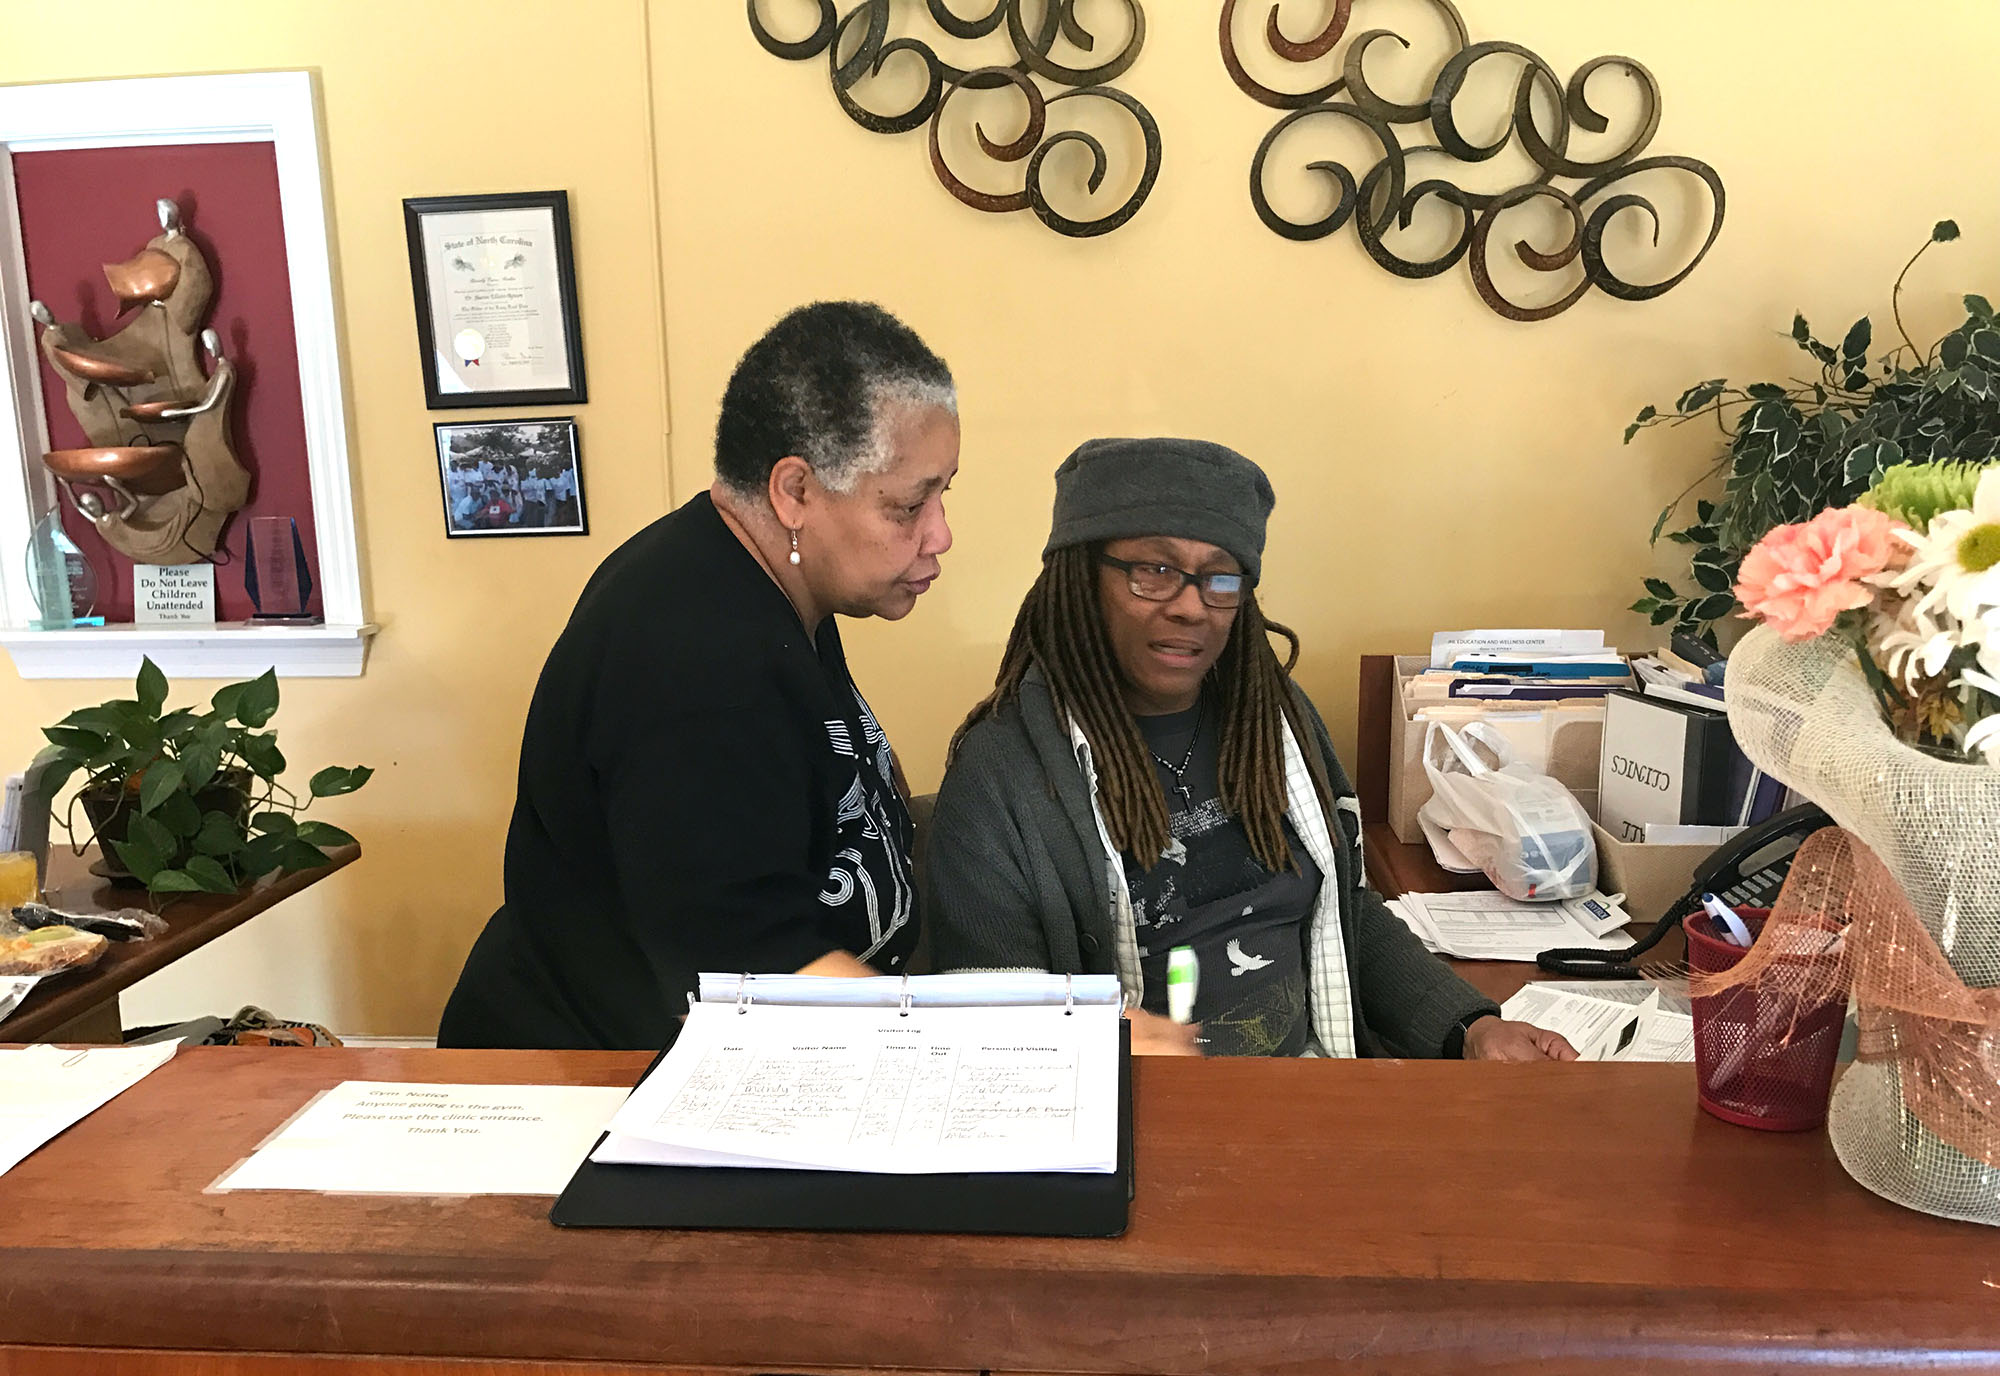 Renada Page and Carolyn Robinson review some work at the reception desk welcoming visitors. (Staff Photo by Ti-Vianna Webster)